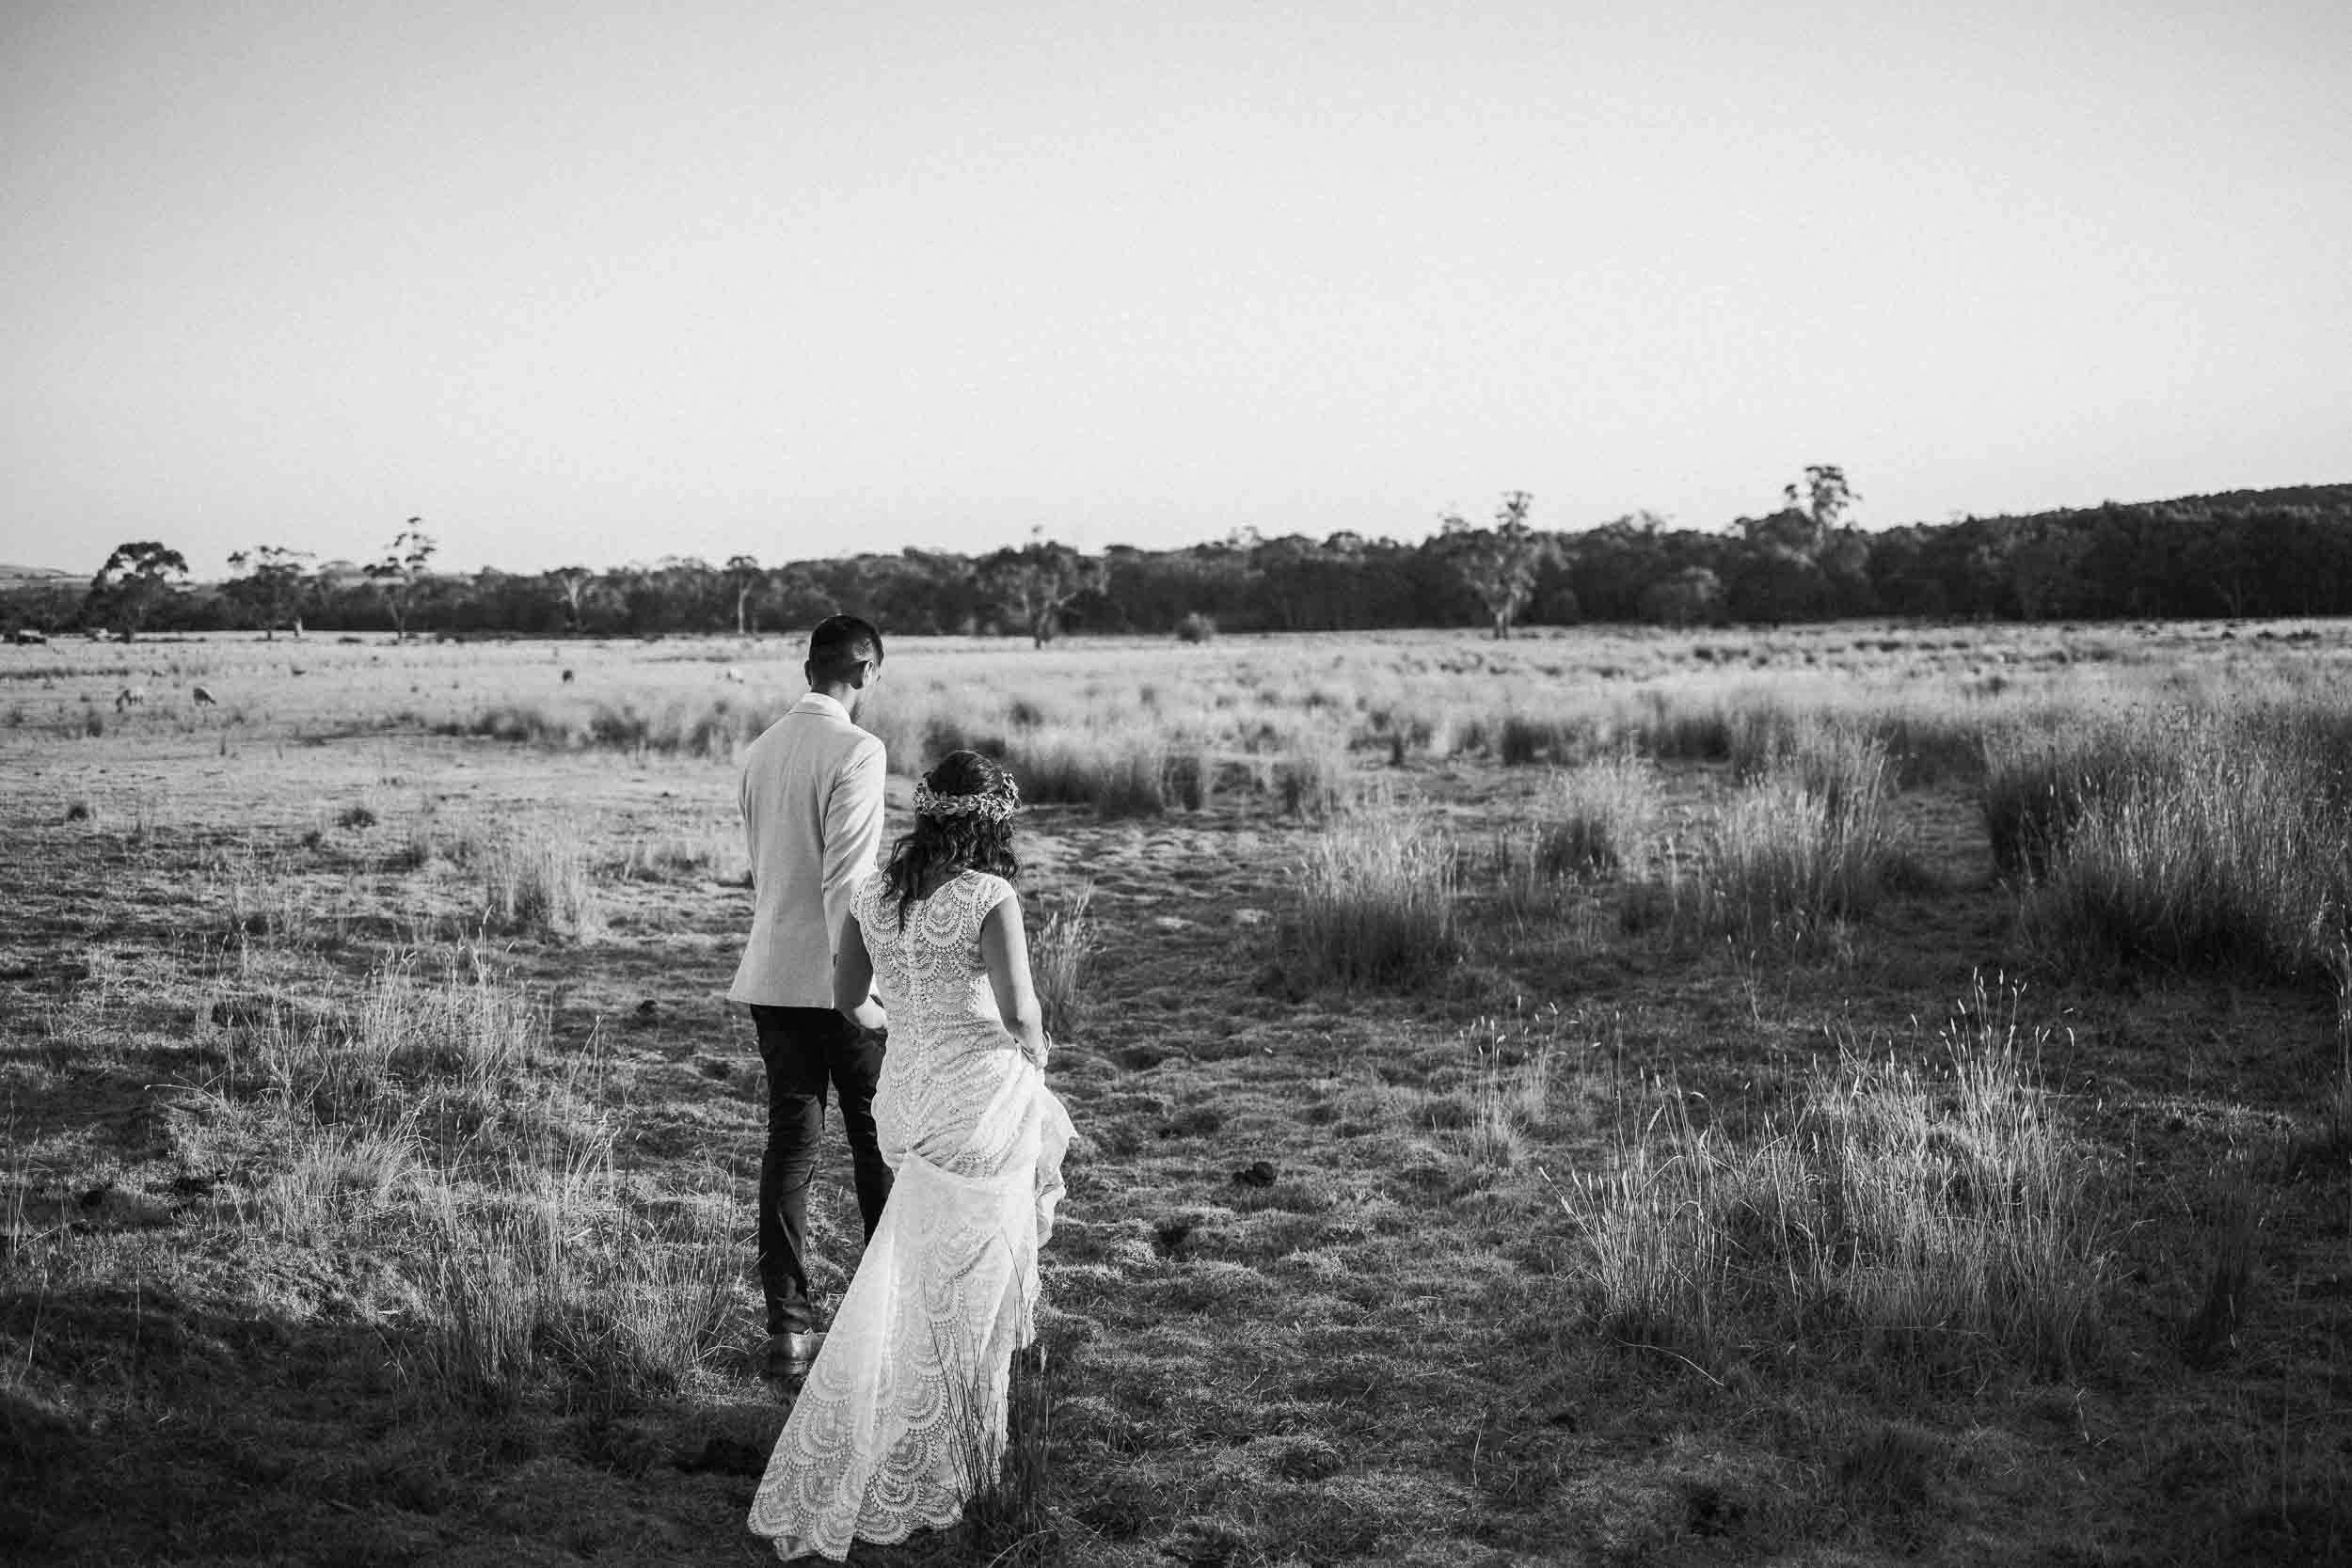 lachlan-scallion-gabbi-tihlak-melbounre-ballarat-victoria-candid-natural-wedding-photography-555.jpg